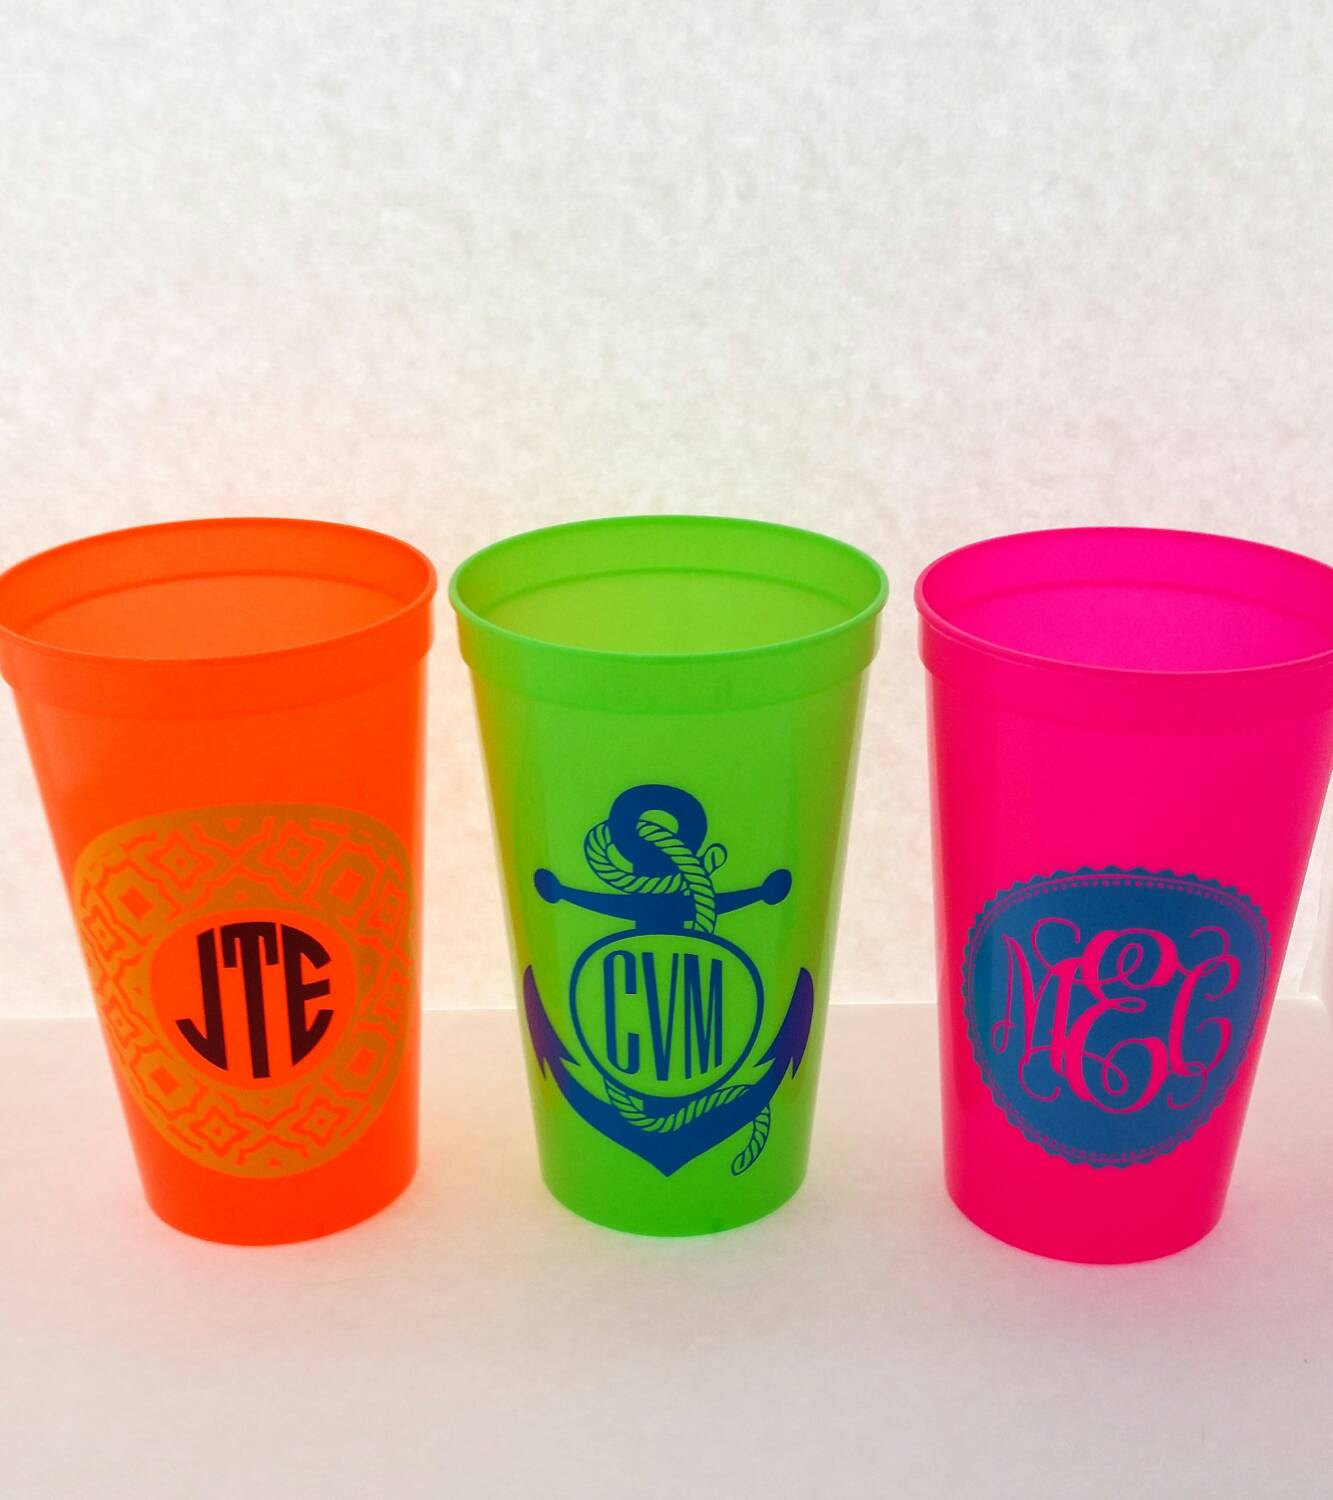 Wholesale Blanks, Quicup Spiker Stadium Cups, lot of 10, 22oz plastic  tumbler with lid straw, BPA FREE, Blank plastic cups, Party Supplies from